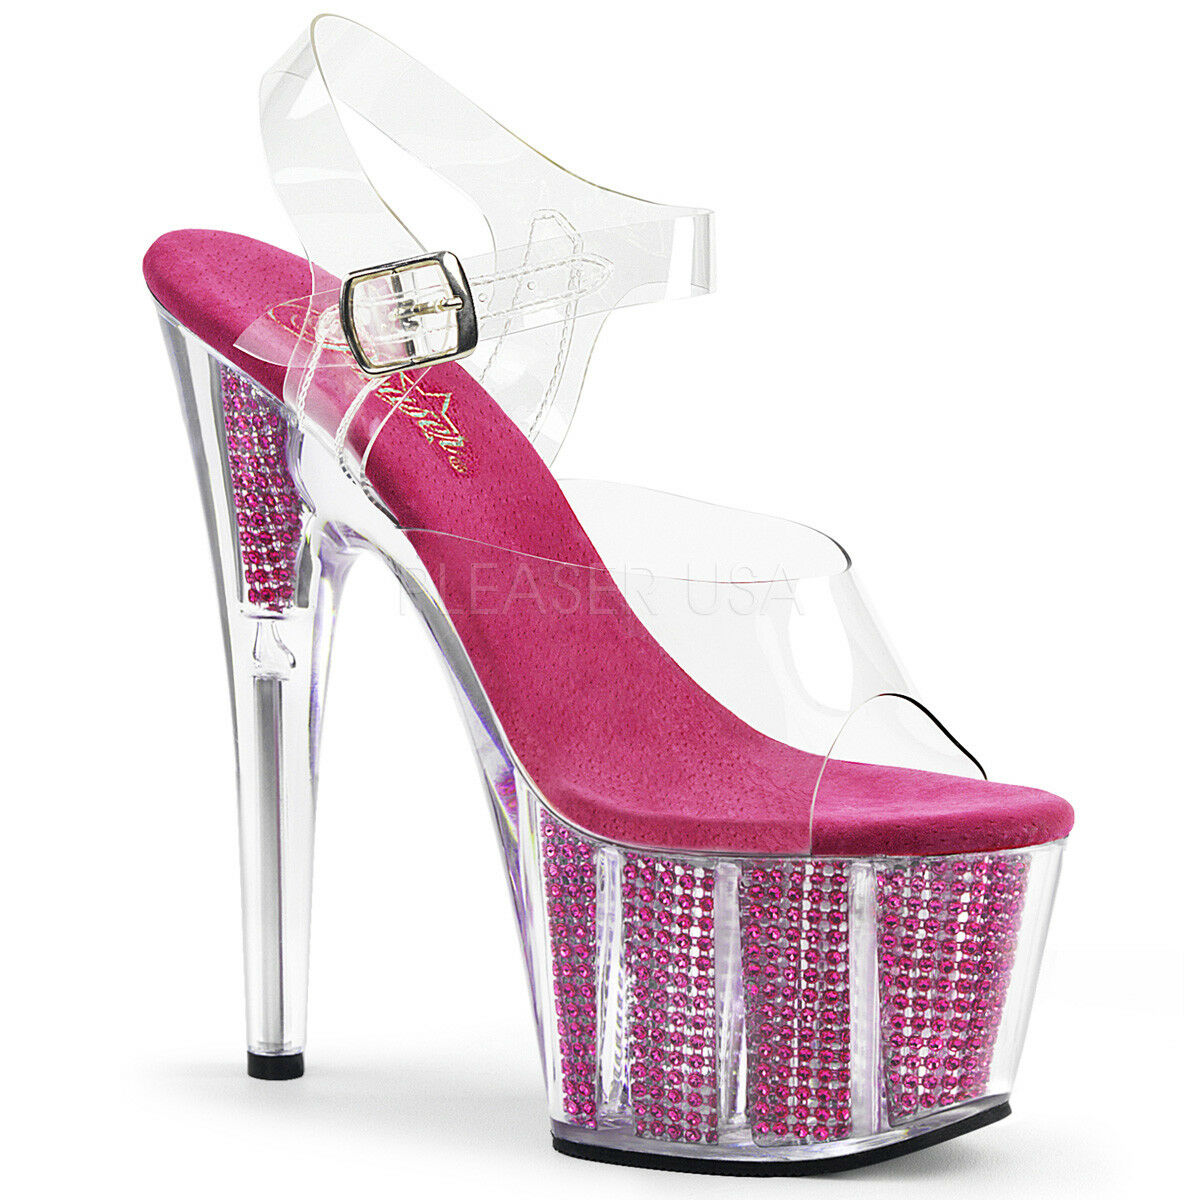 PLEASER ADORE 708SRS FUCHSIA PLATFORM POLE DANCING STILETTO SANDALS